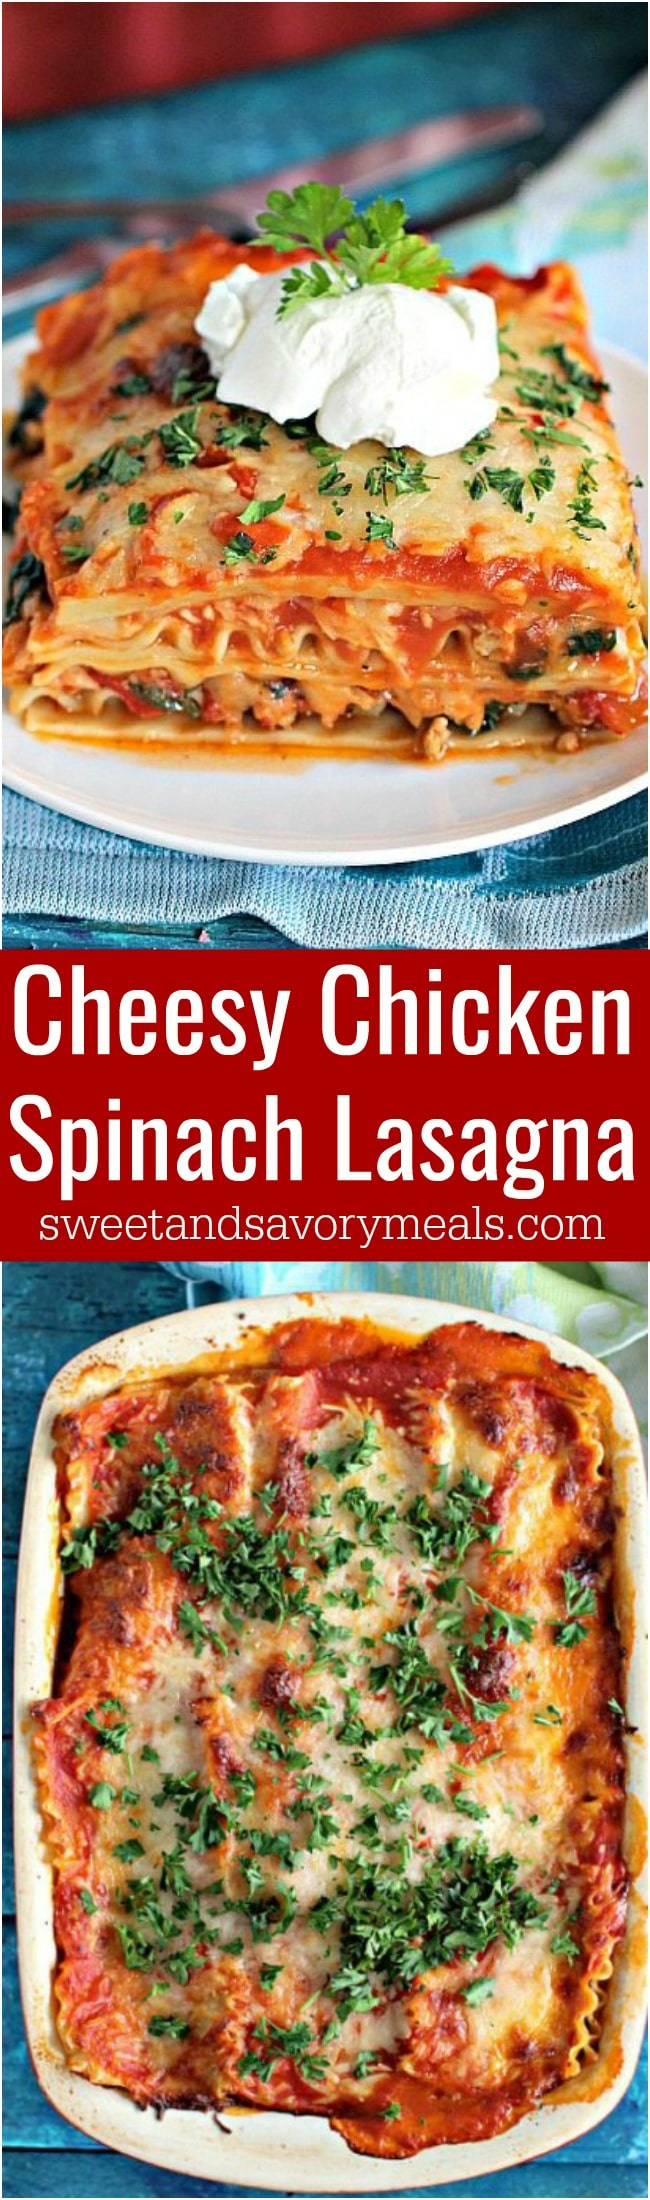 Best Chicken Spinach Lasagna is easy to make, loaded with lean chicken and spinach for a nutritional boost. Delicious, and leftovers taste amazing!